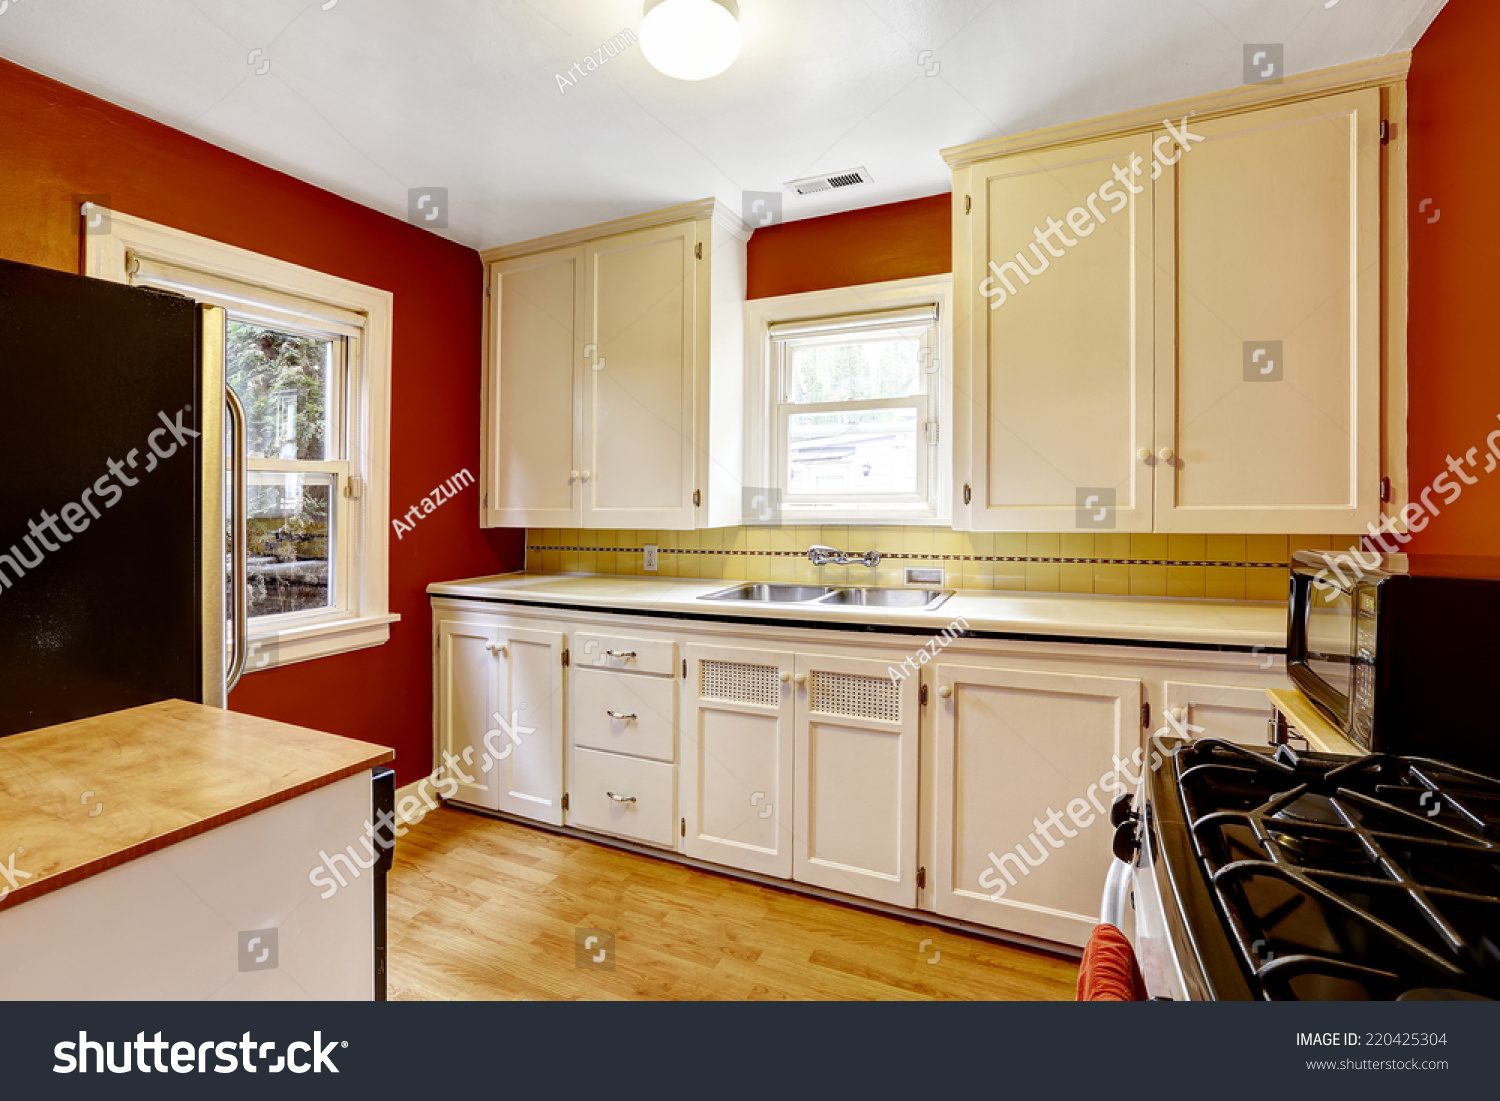 White Kitchen Cabinets Bright Red Wall Stock Photo Edit Now 220425304